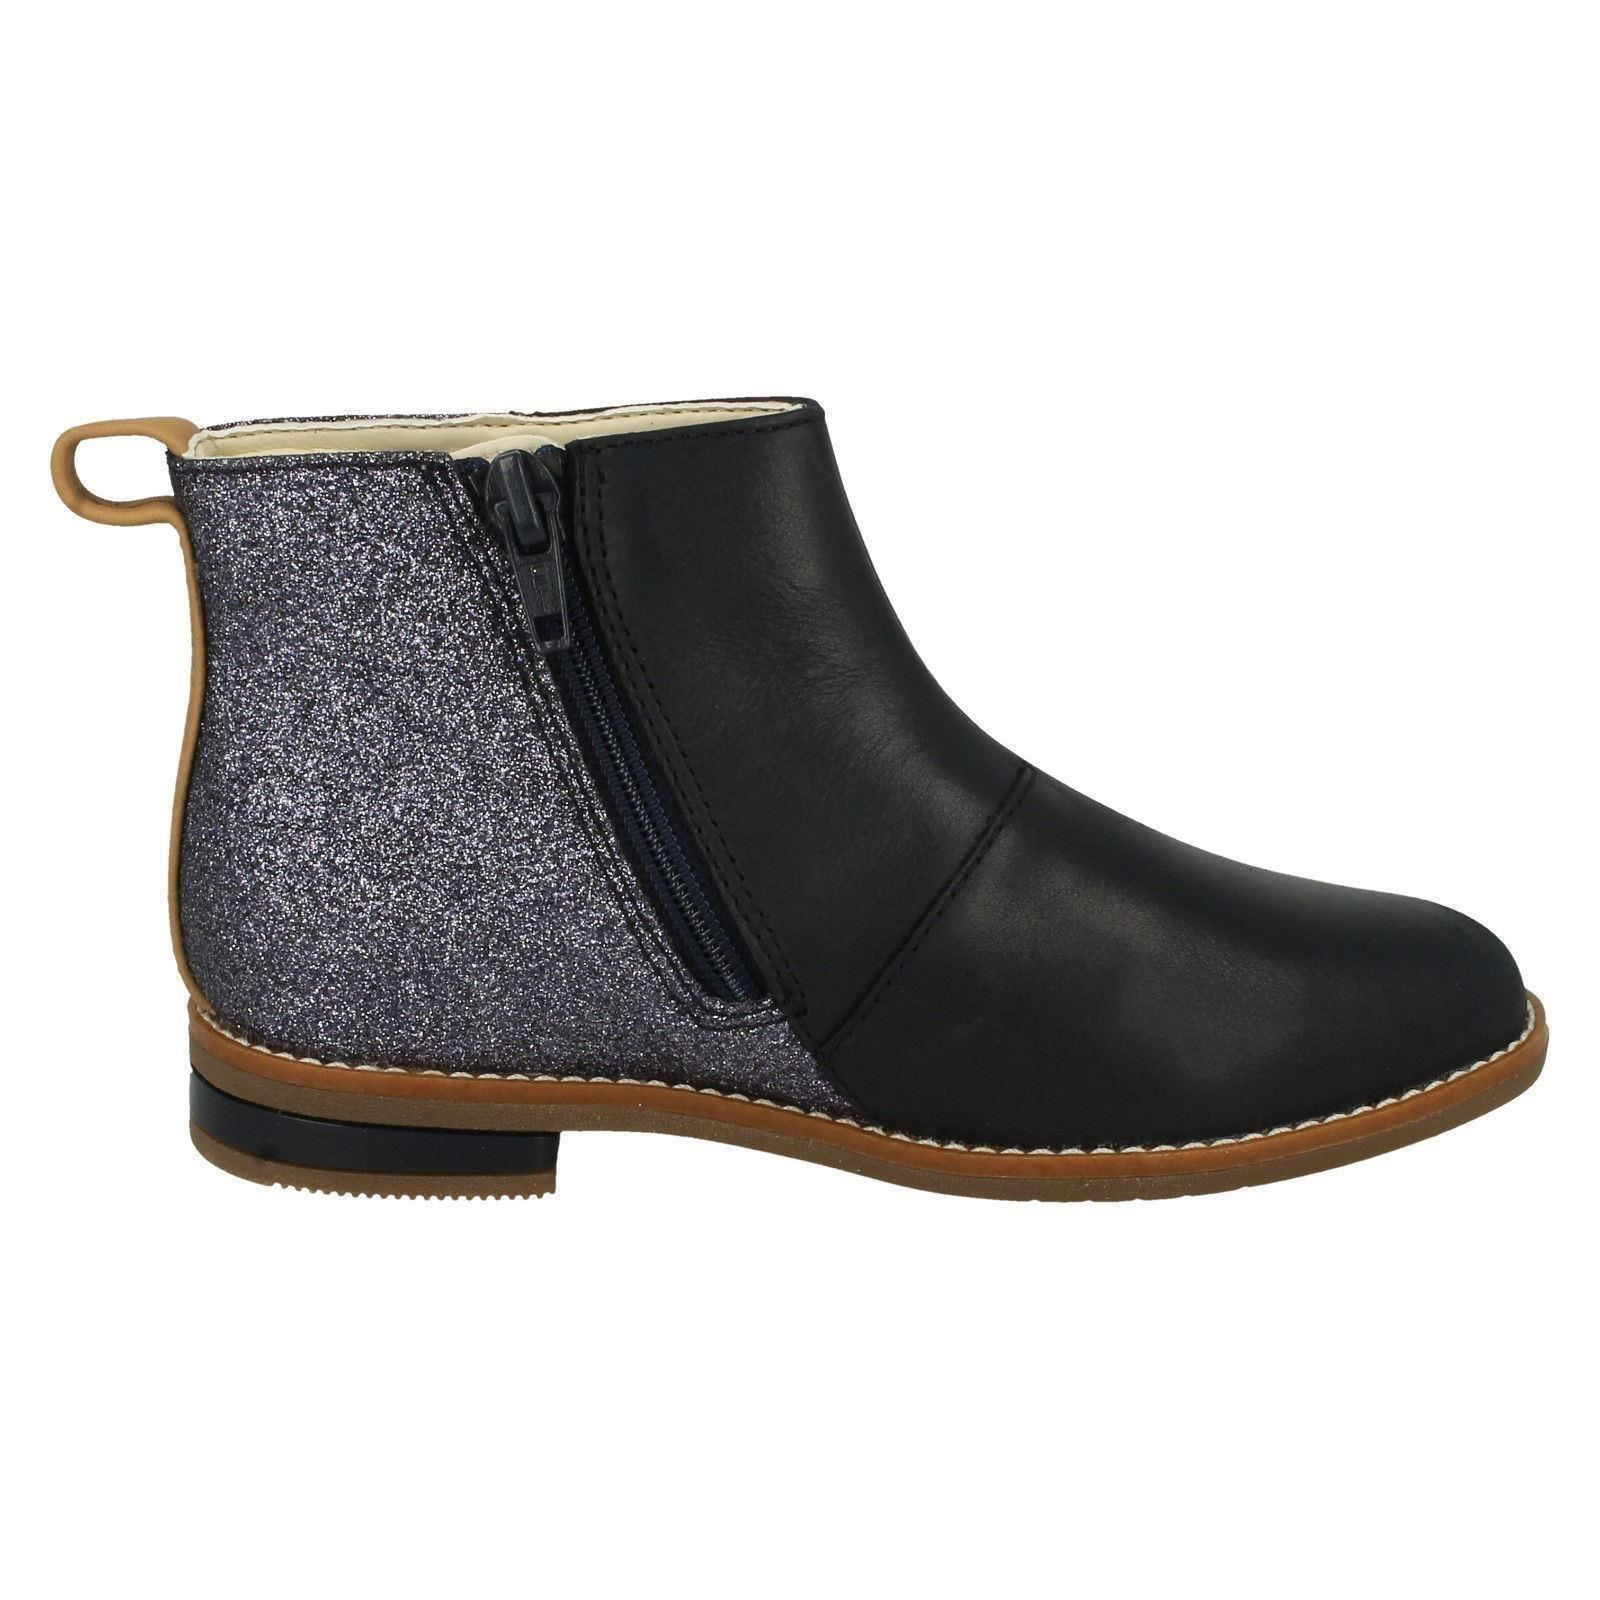 Clarks Girls Smart Ankle Boots /'Drew Fun/'